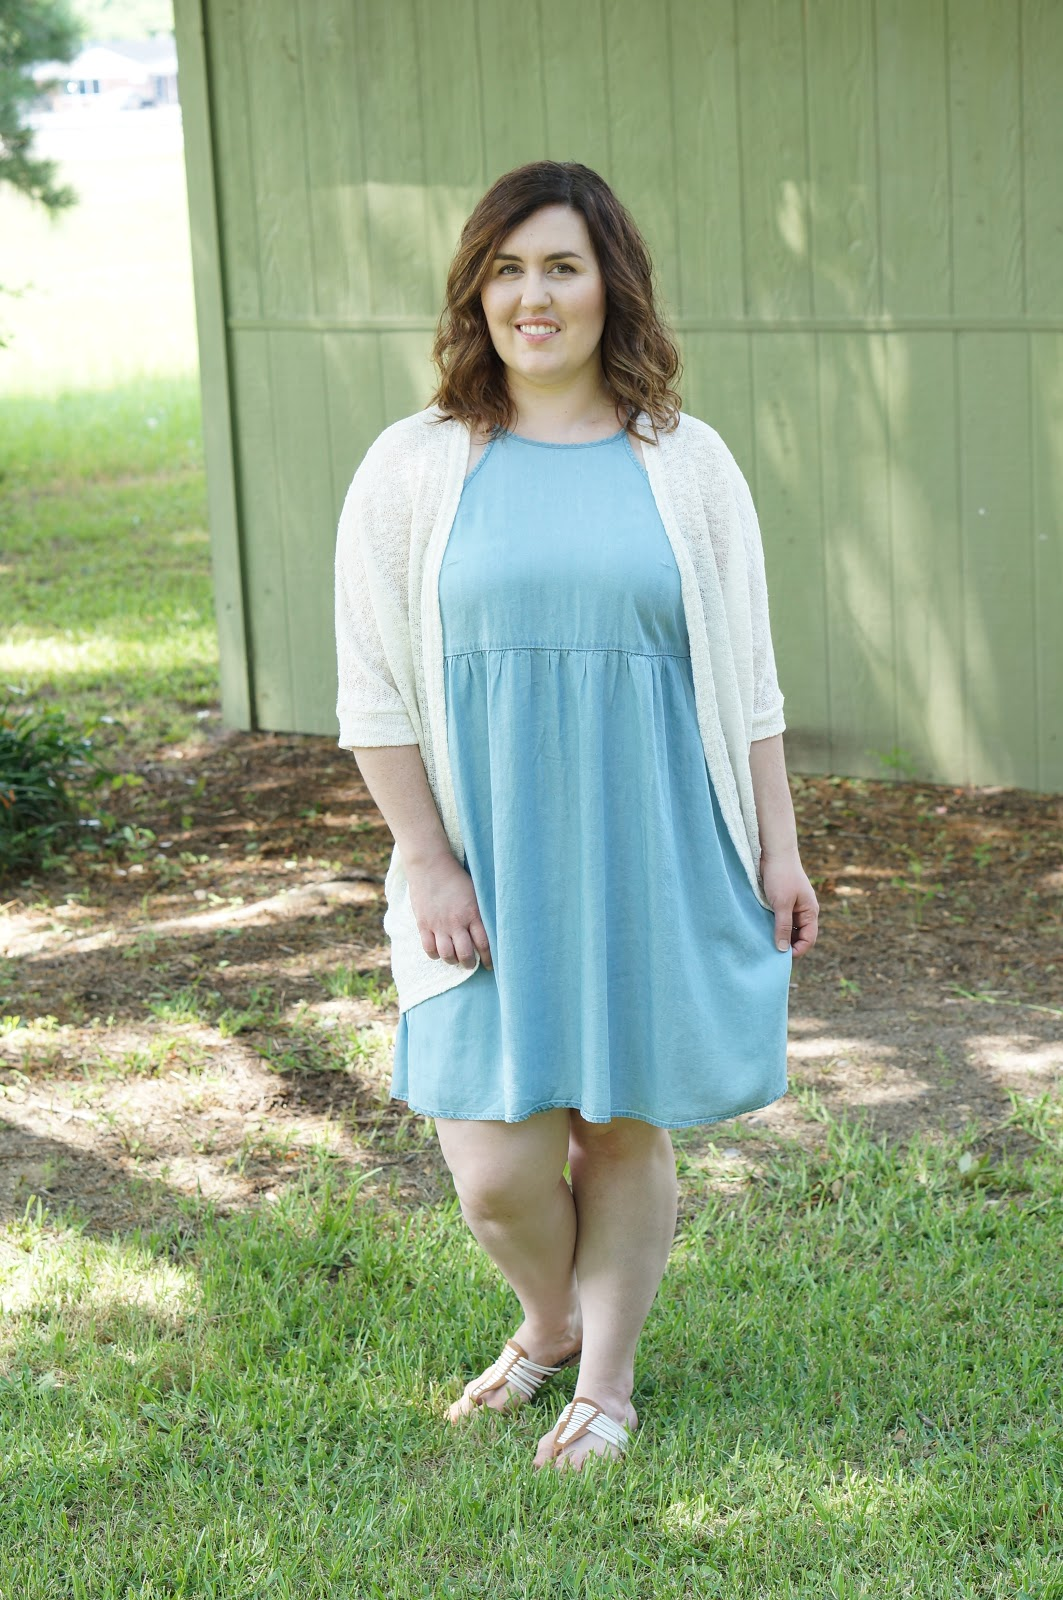 Rebecca Lately Target Chambray Swing Dress Cream Cocoon Cardigan Target DV Sandals